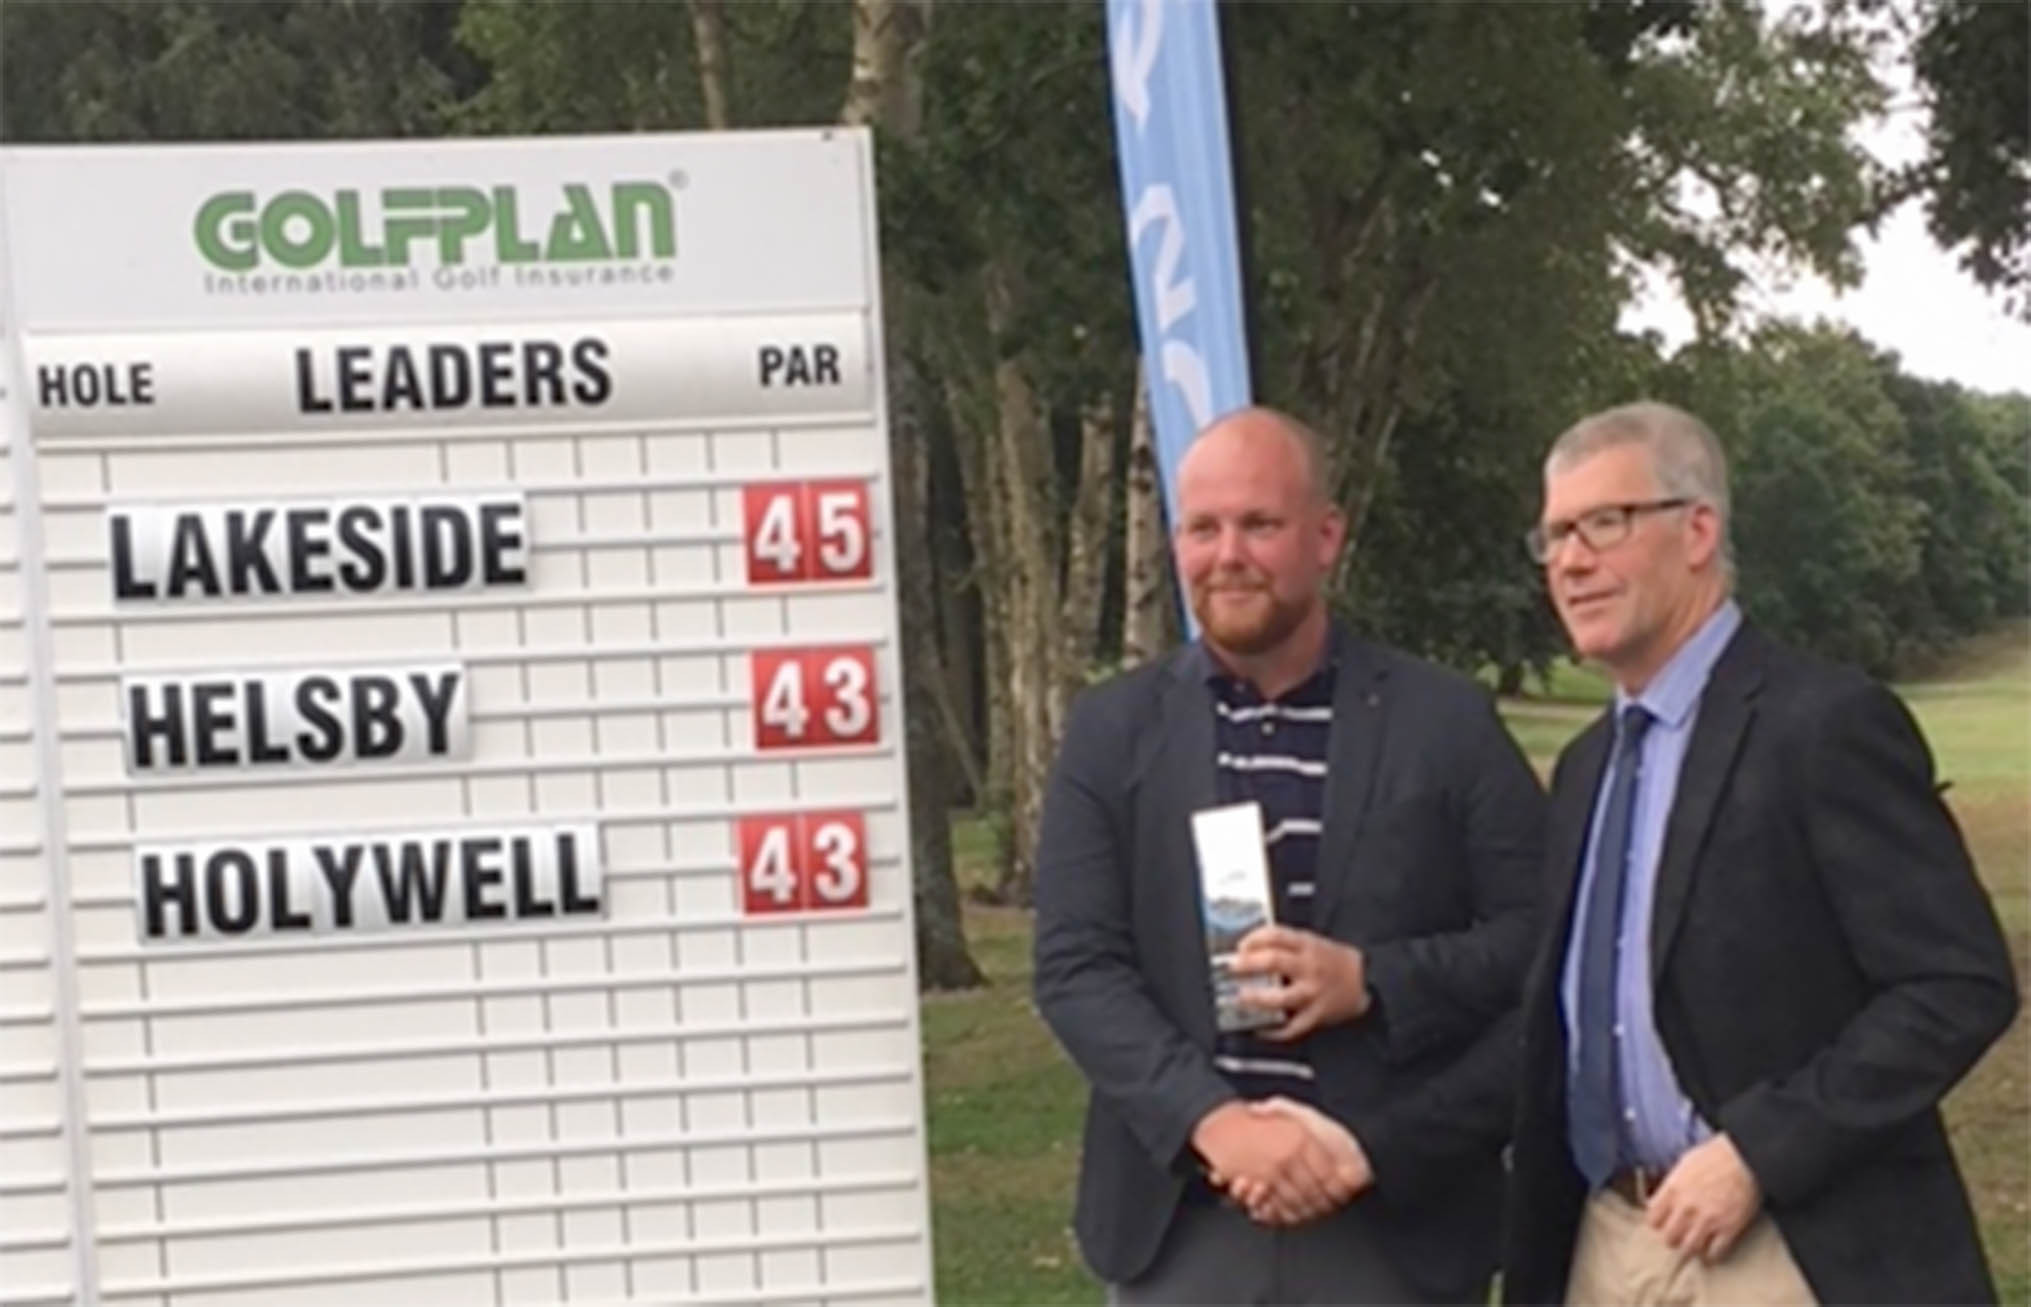 Grant Edwards and Steve Owen of Lakeside Golf Club will represent the club in the final of the SkyCaddie PGA Pro-Captain Challenge in Mallorca over two days in November after winning the regional final in Altrincham.